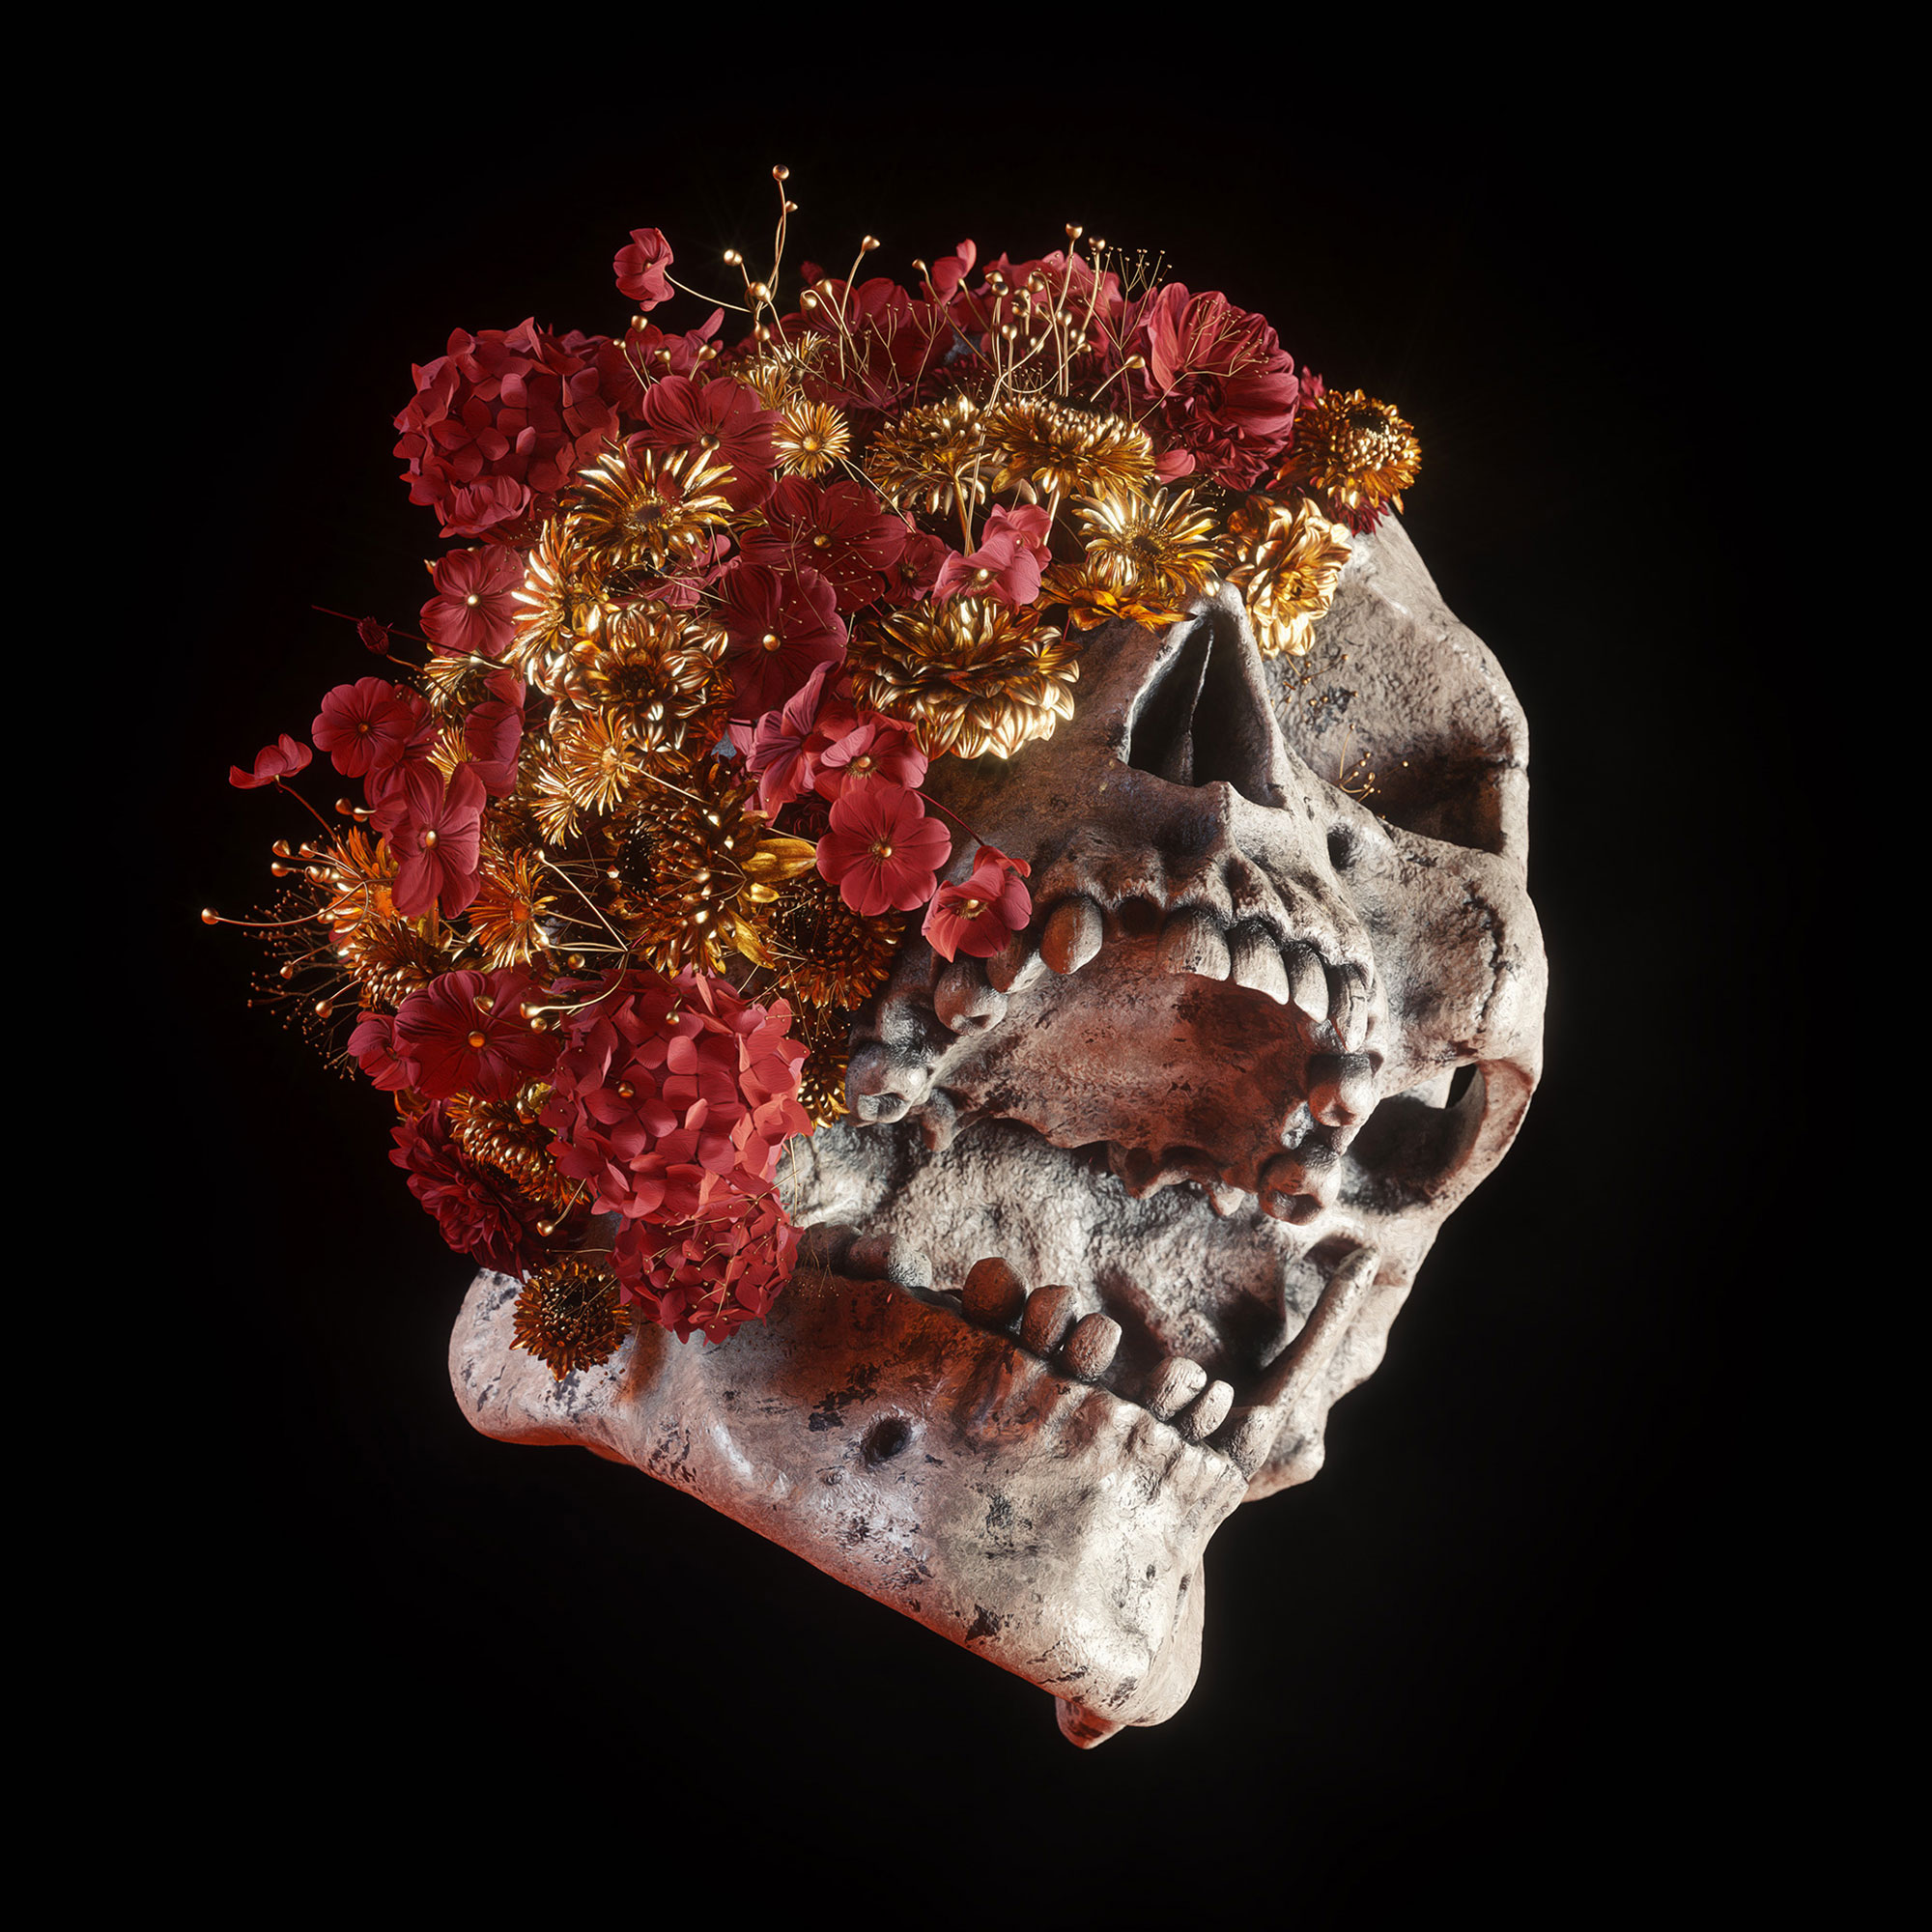 Darkly Elegant Digital Skull Art by Billelis